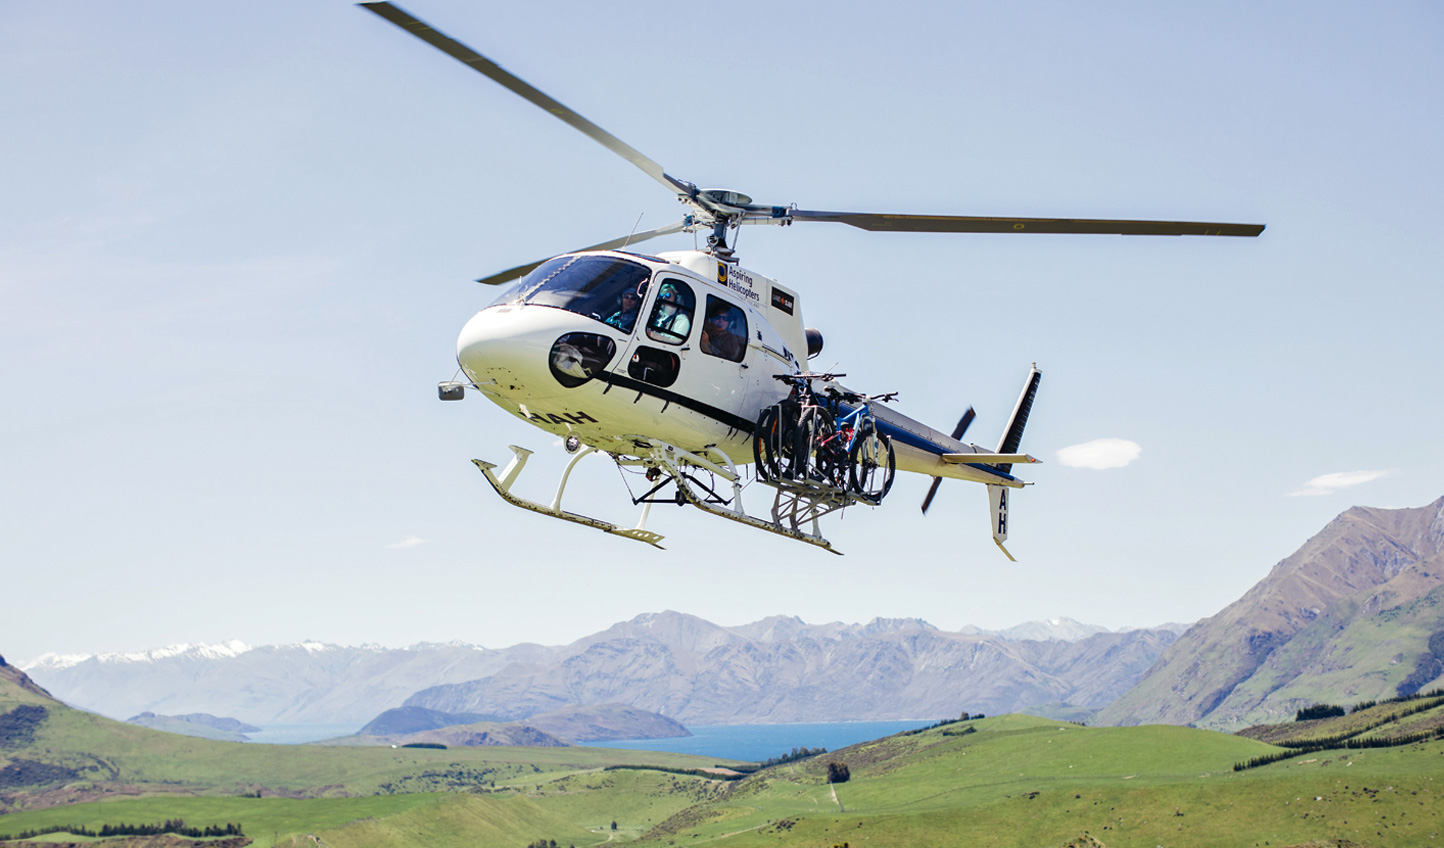 Heli-biking for the thrill seekers